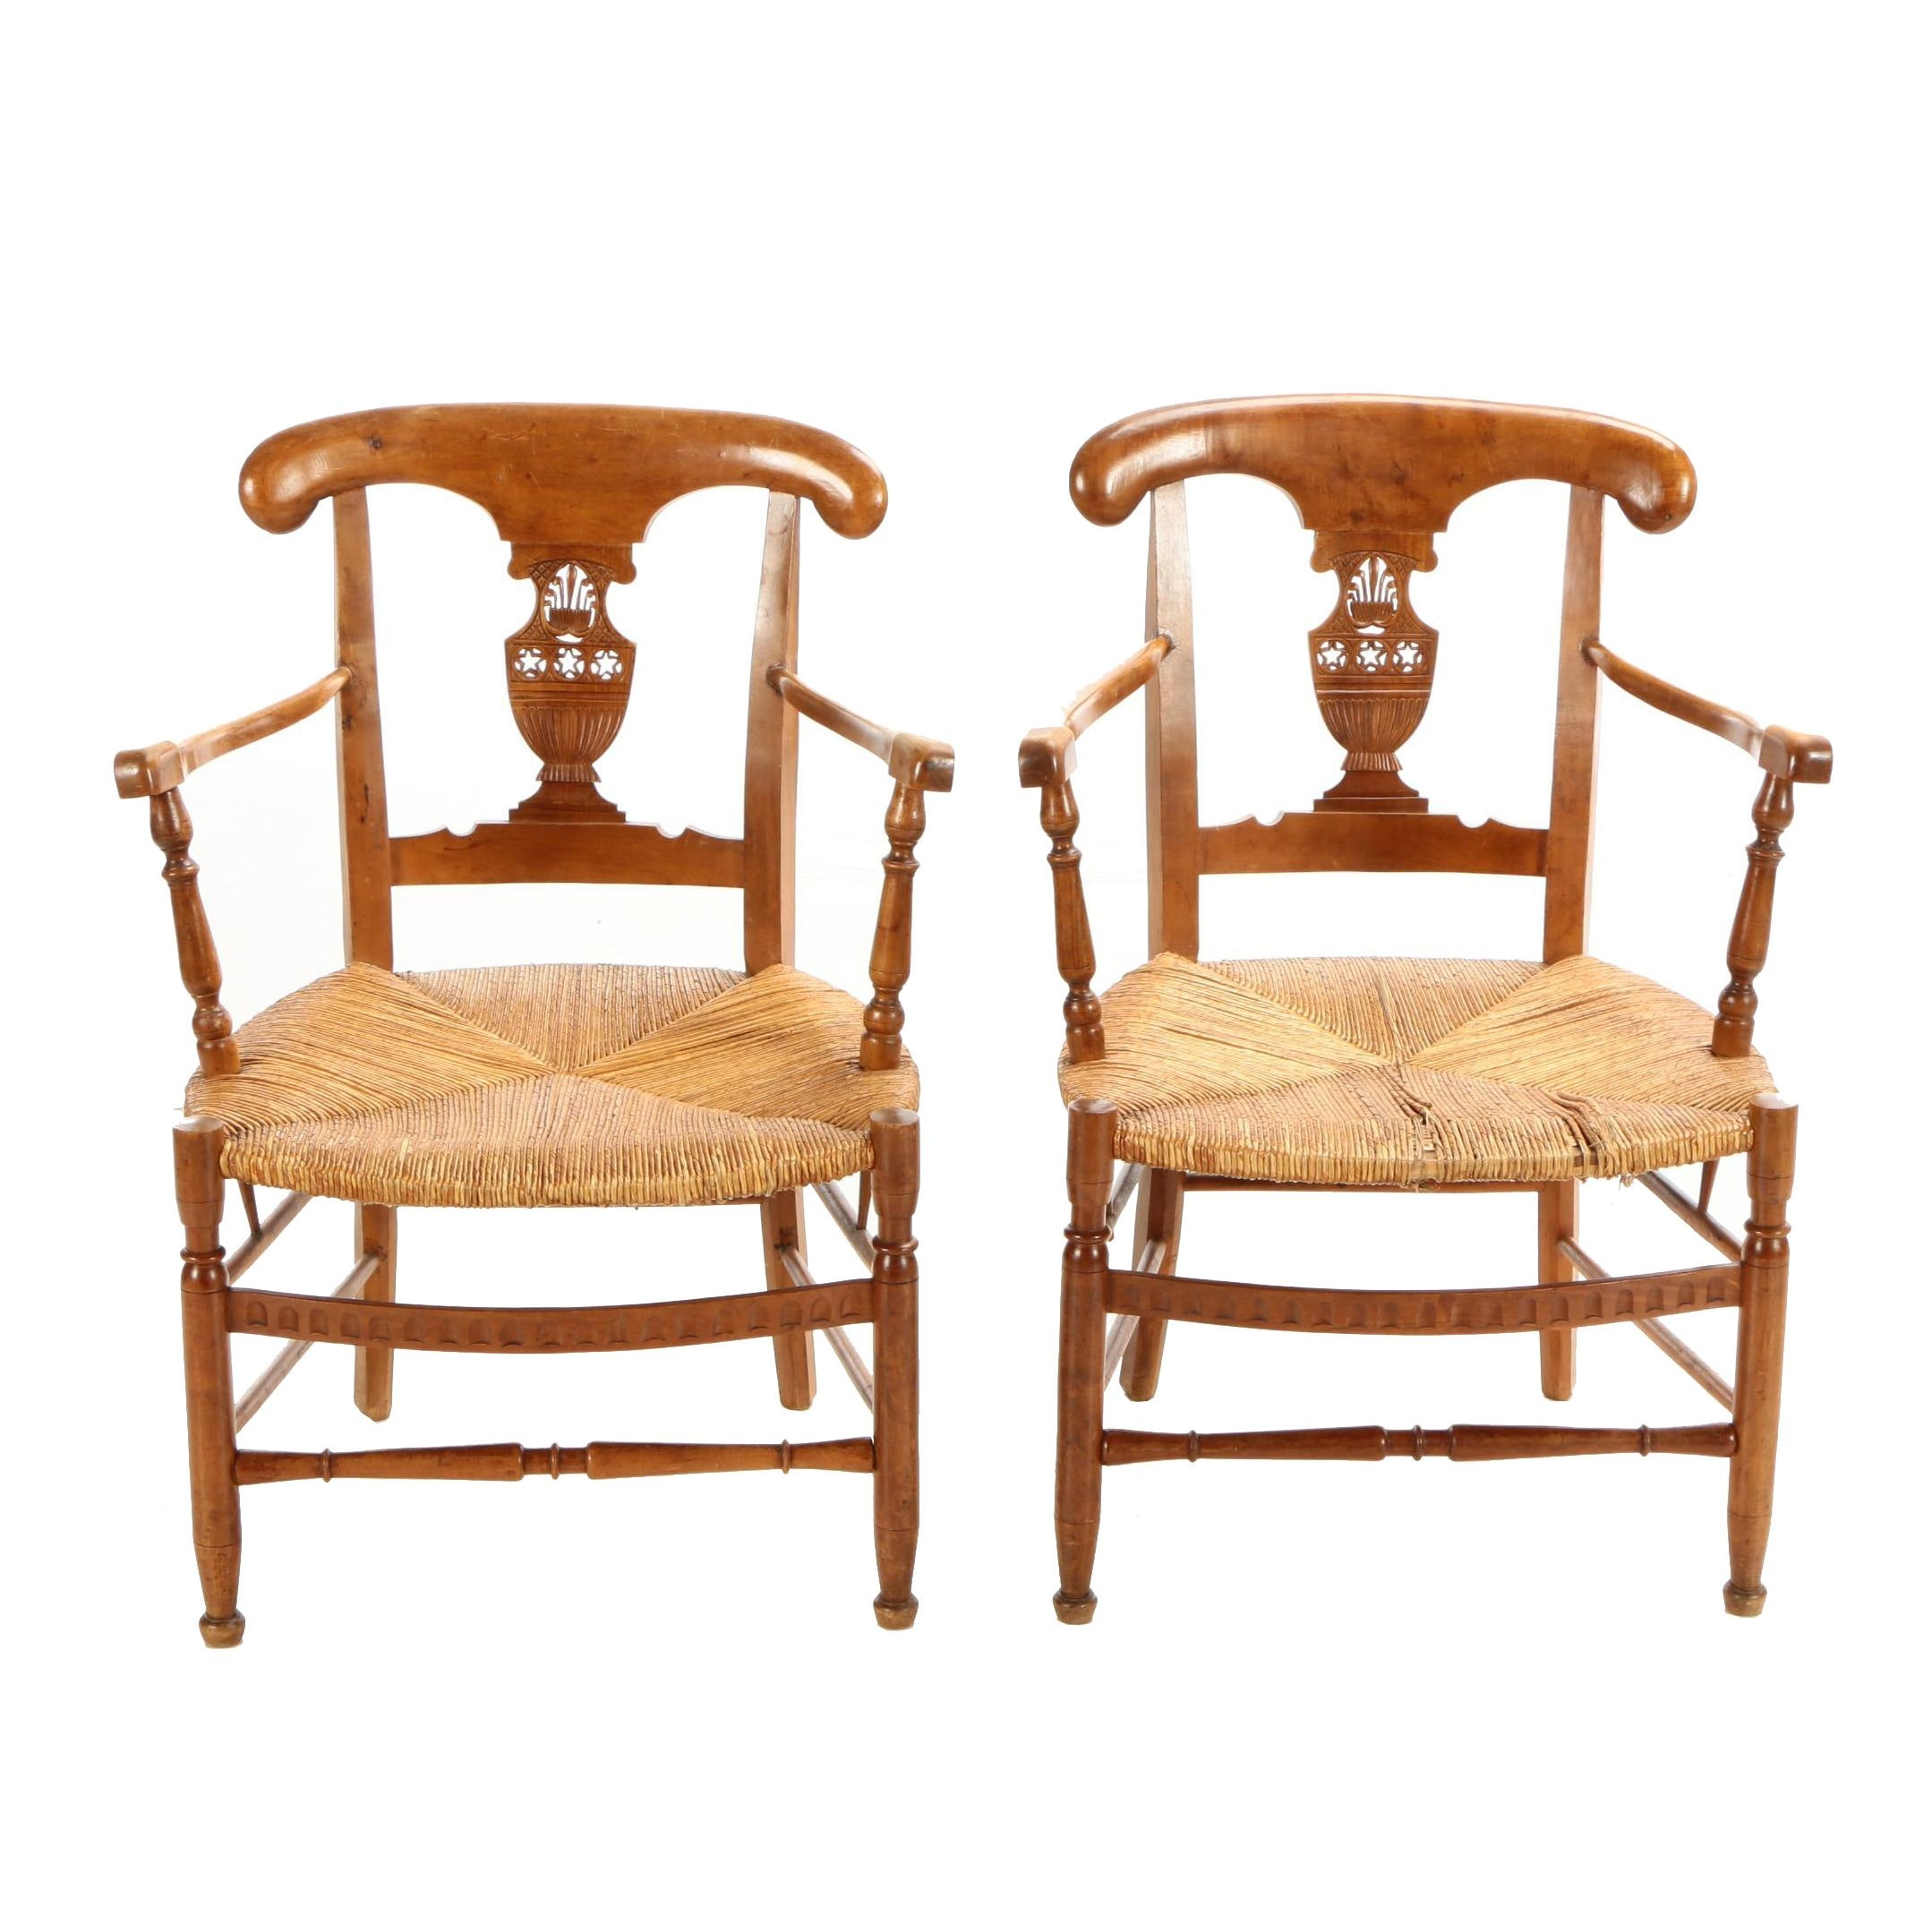 Pair of French Provincial Open Armchairs, Late 19th/Early 20th Century